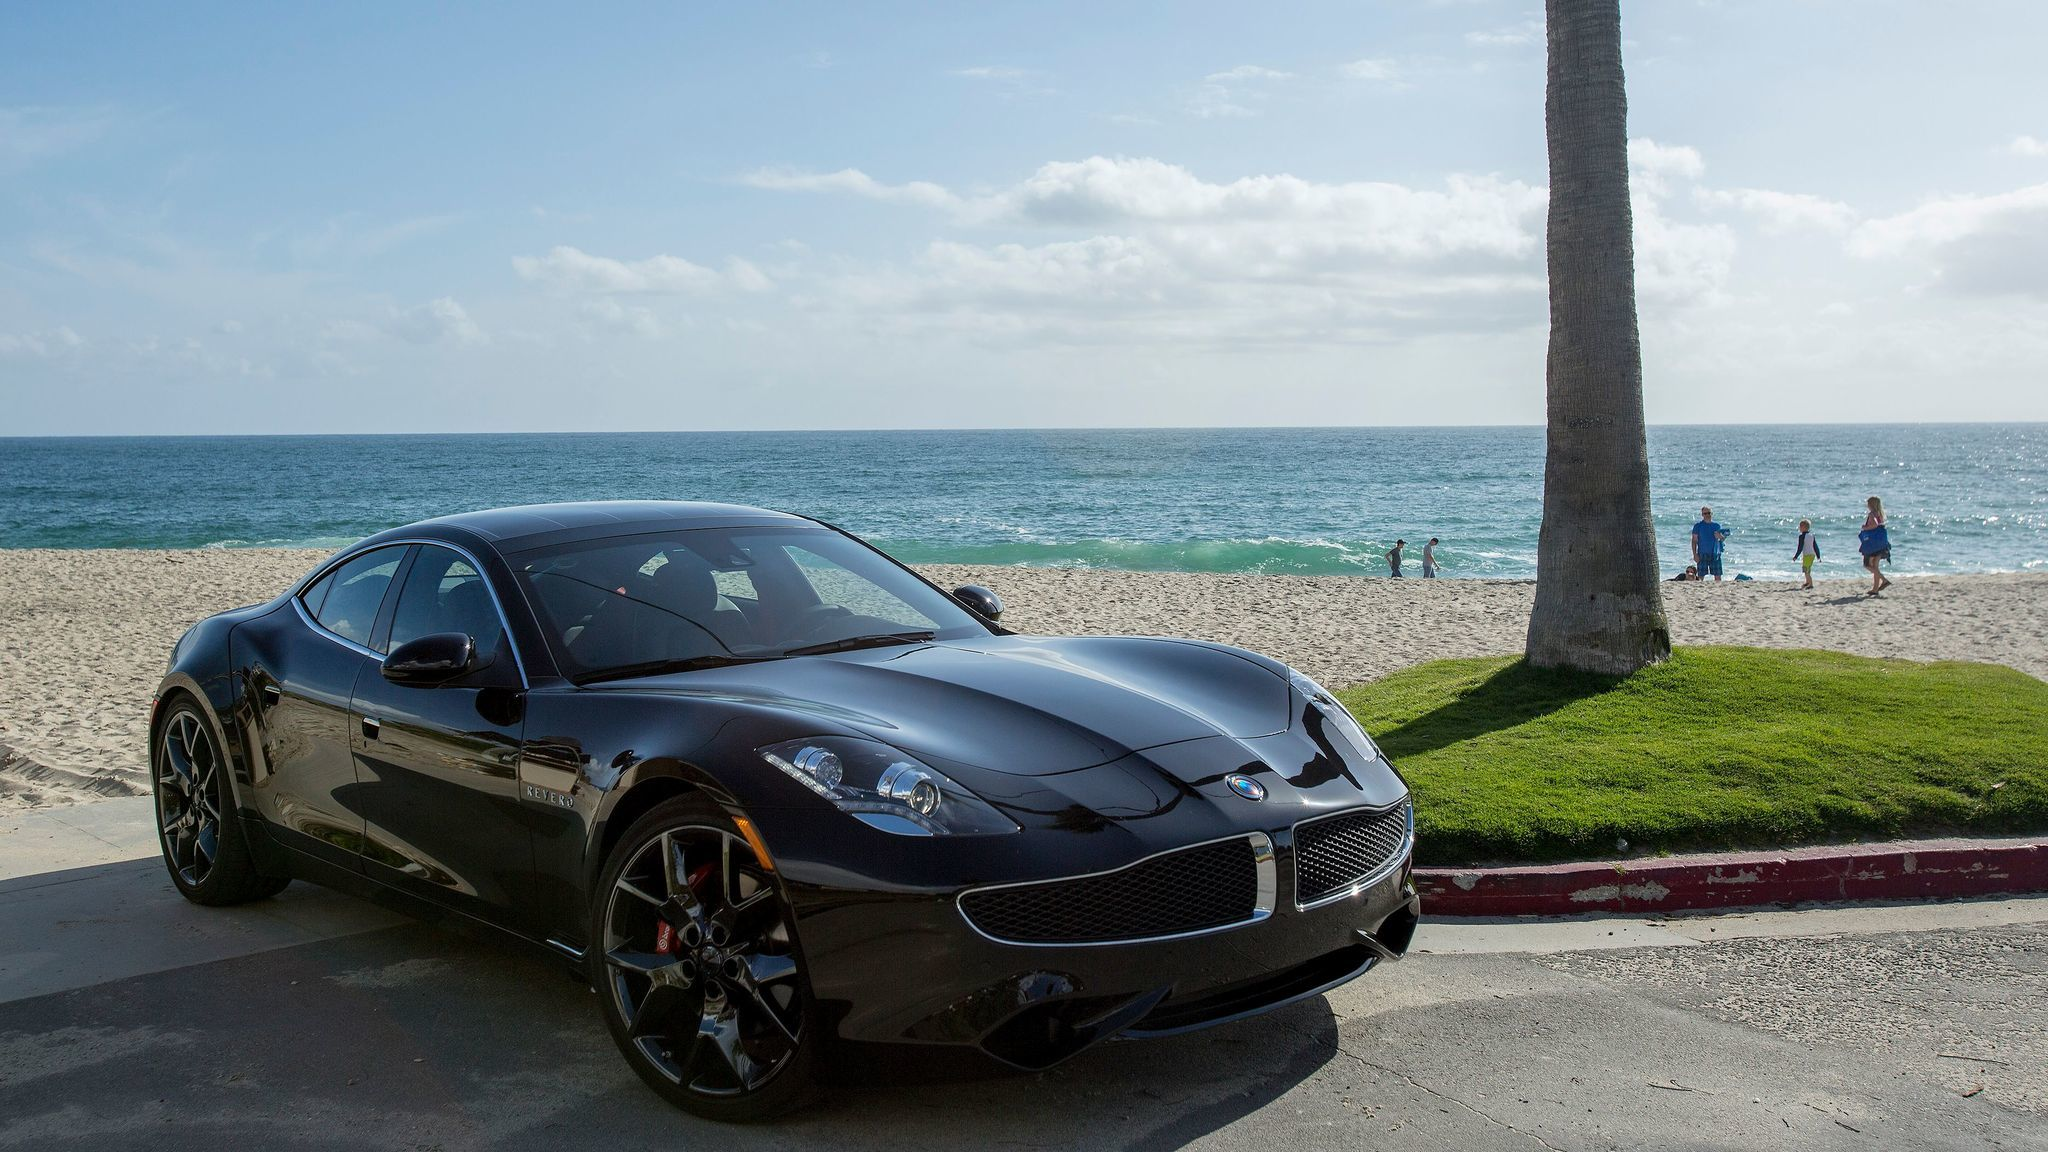 2018 Karma Revero is a...